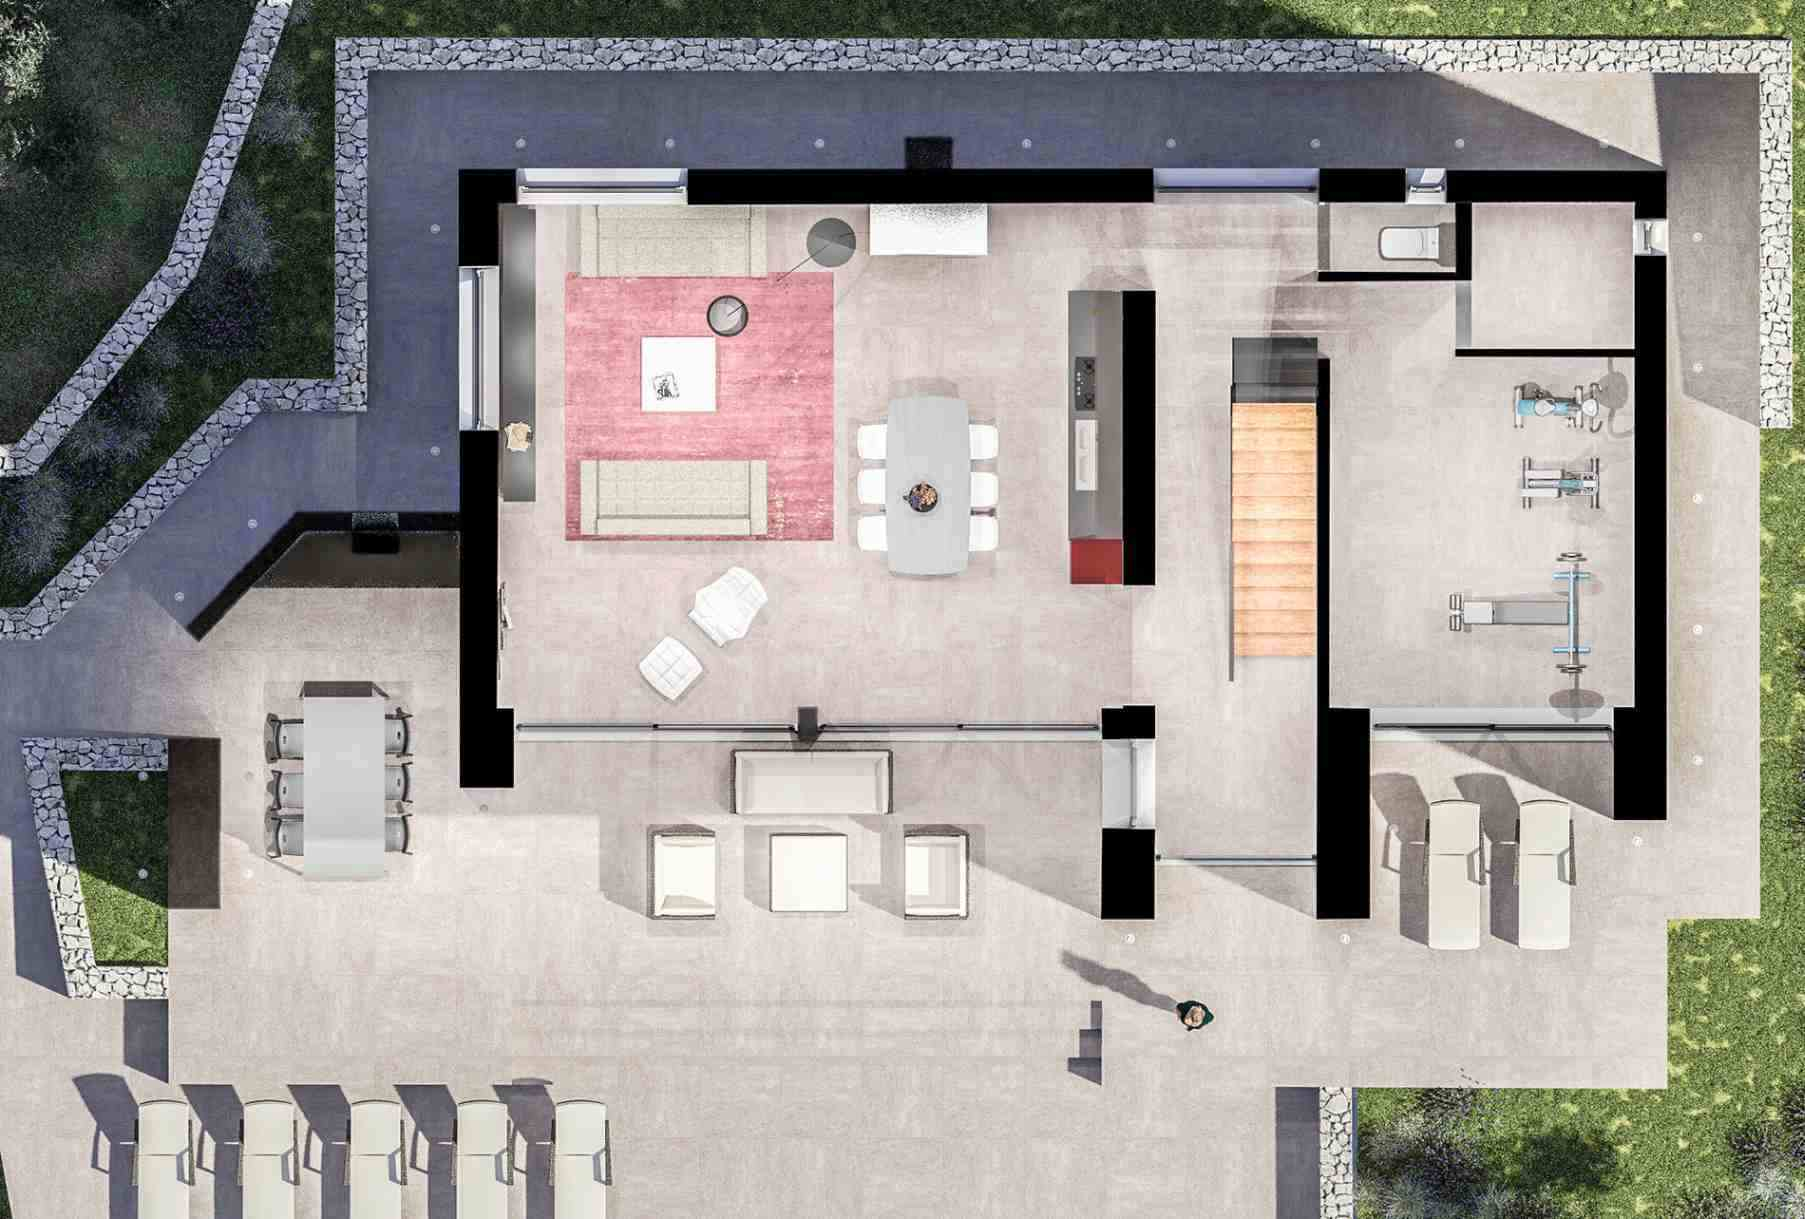 Floor plan of the modern villa for sale